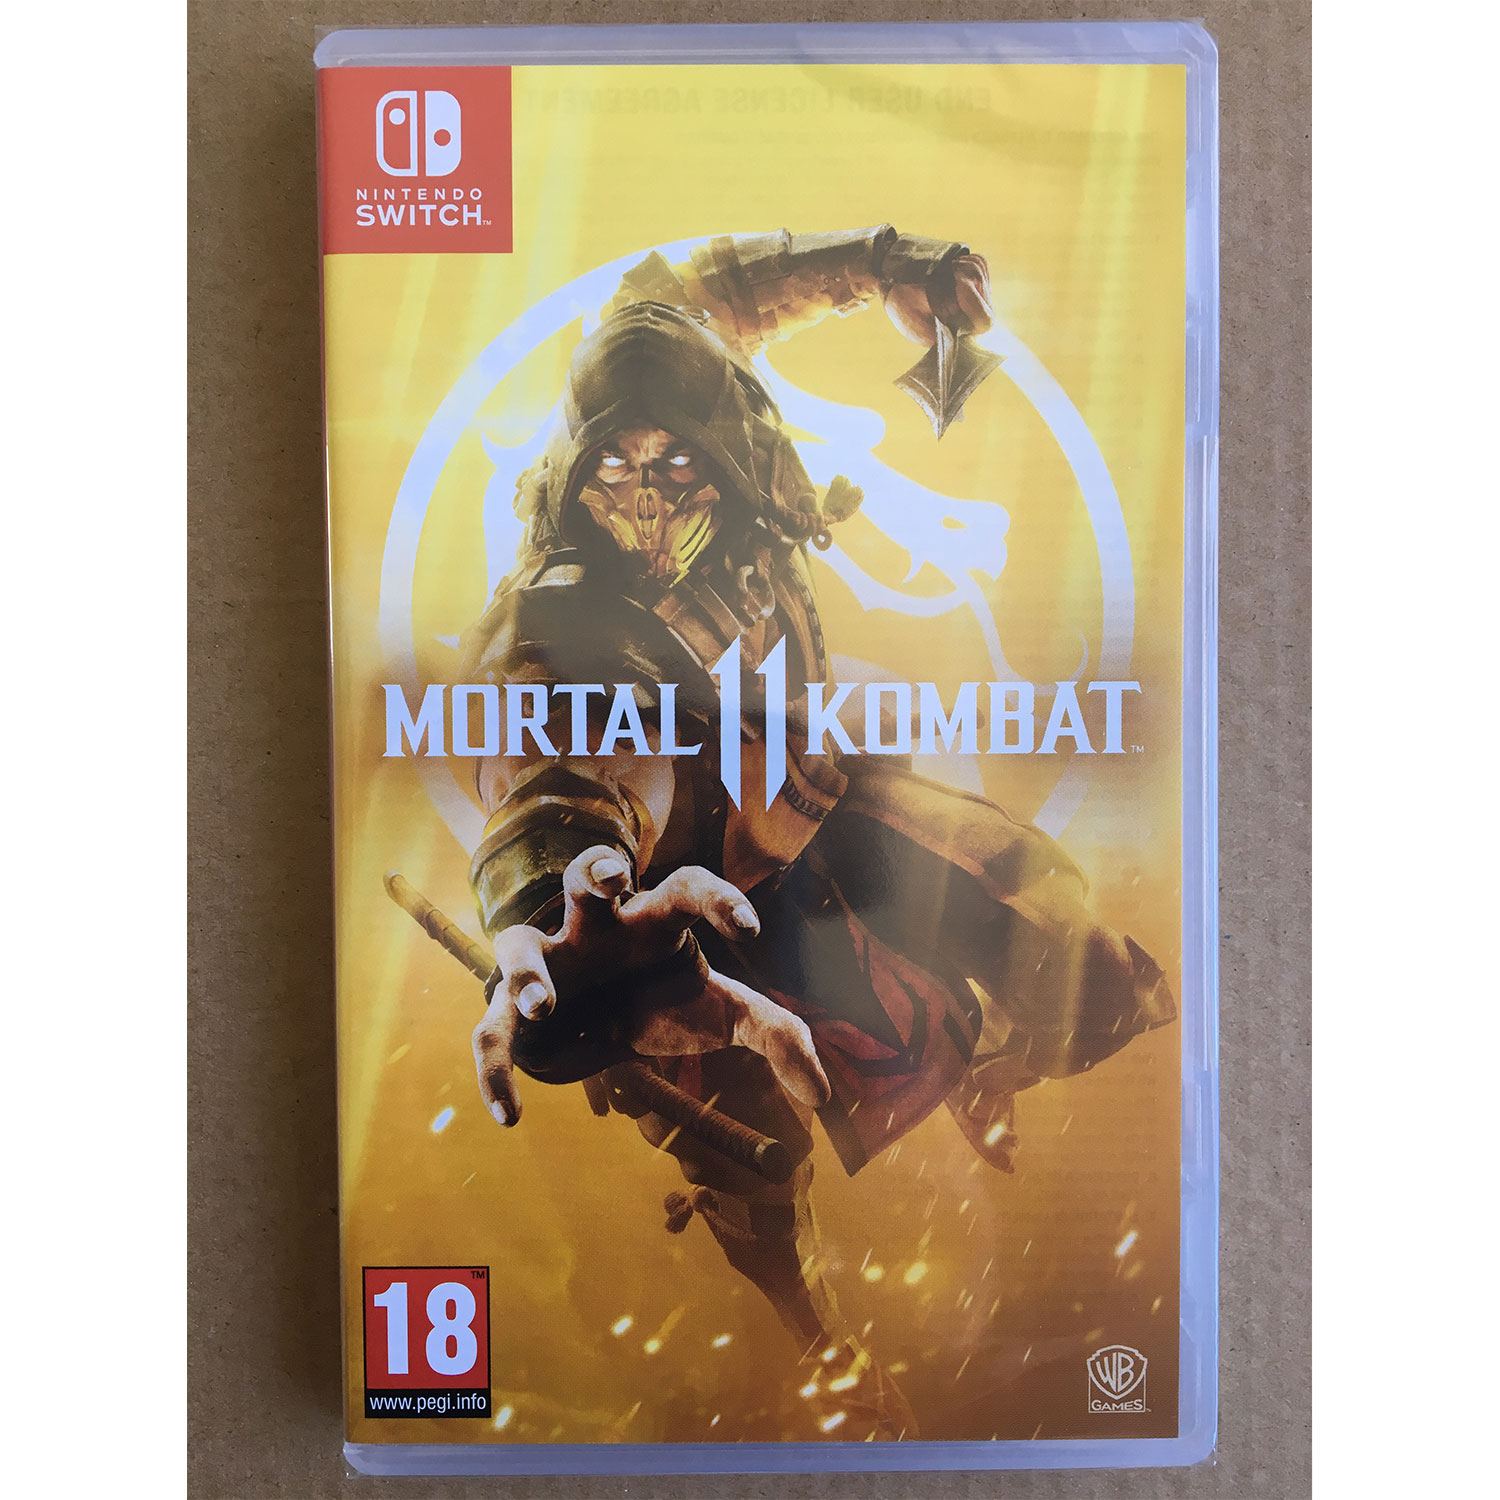 Details about Mortal Kombat 11 NINTENDO SWITCH New and Sealed